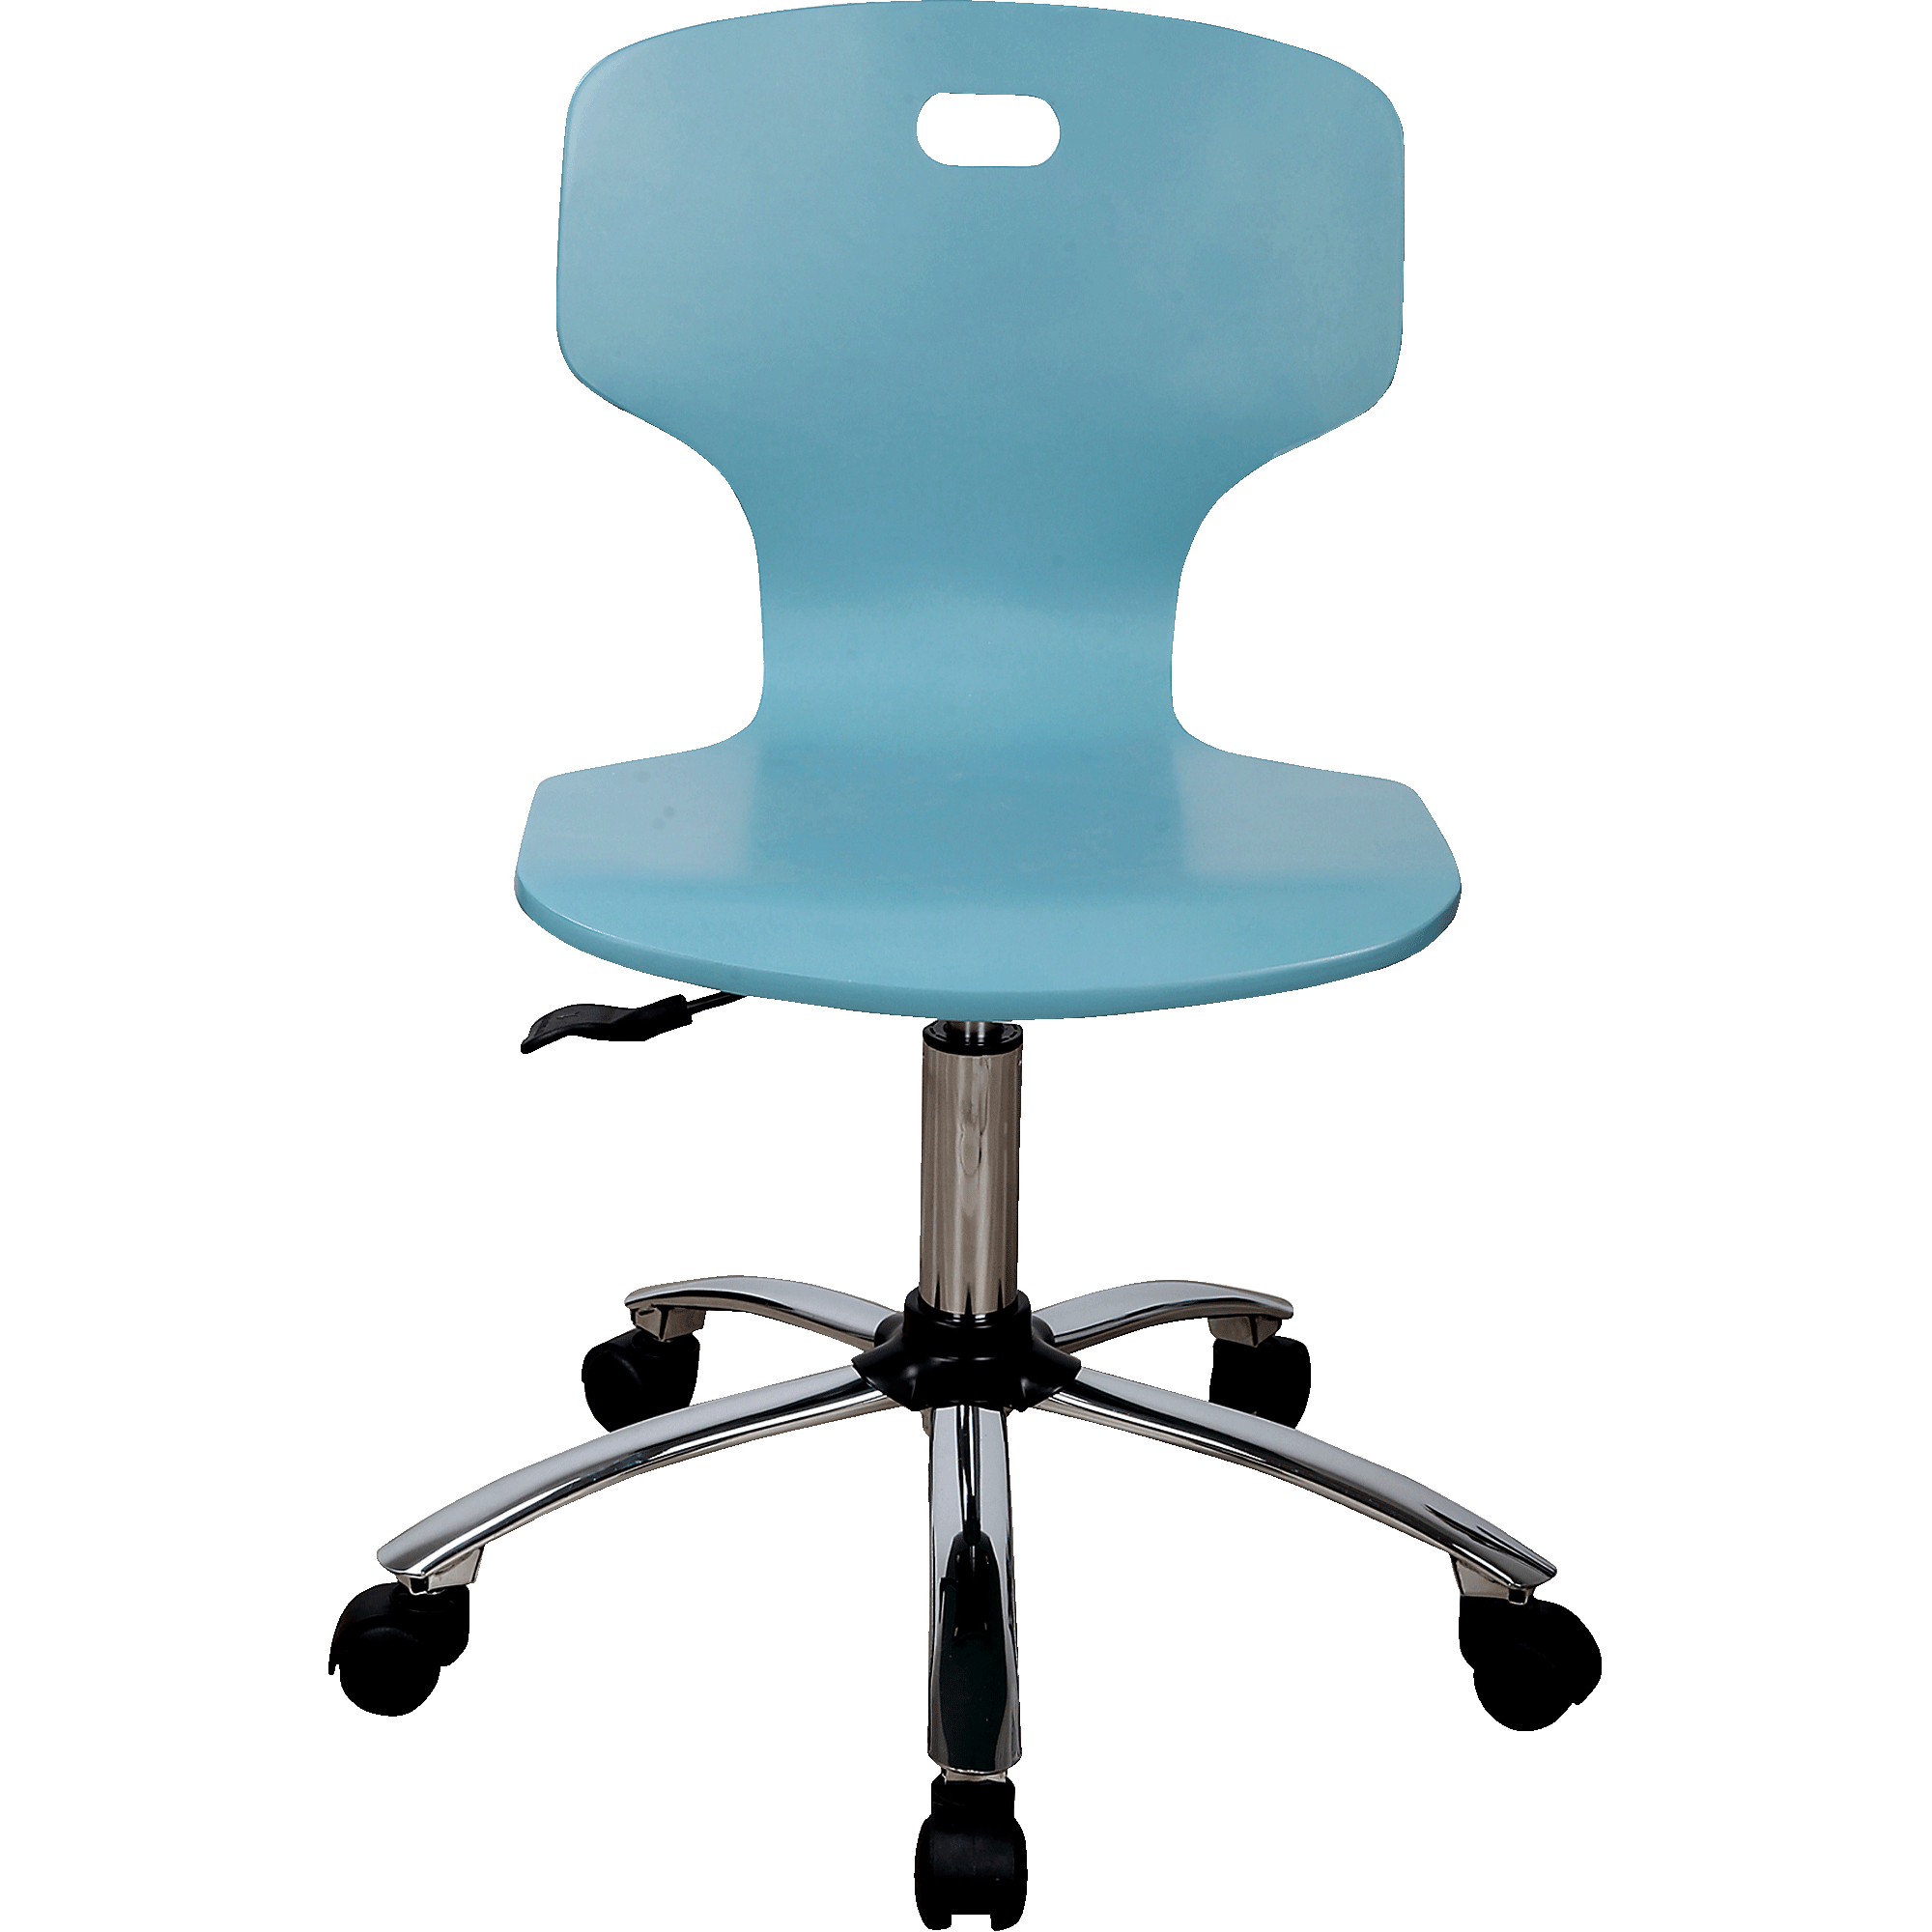 Charmant Chaise De Bureau Enfant Bleu STAR